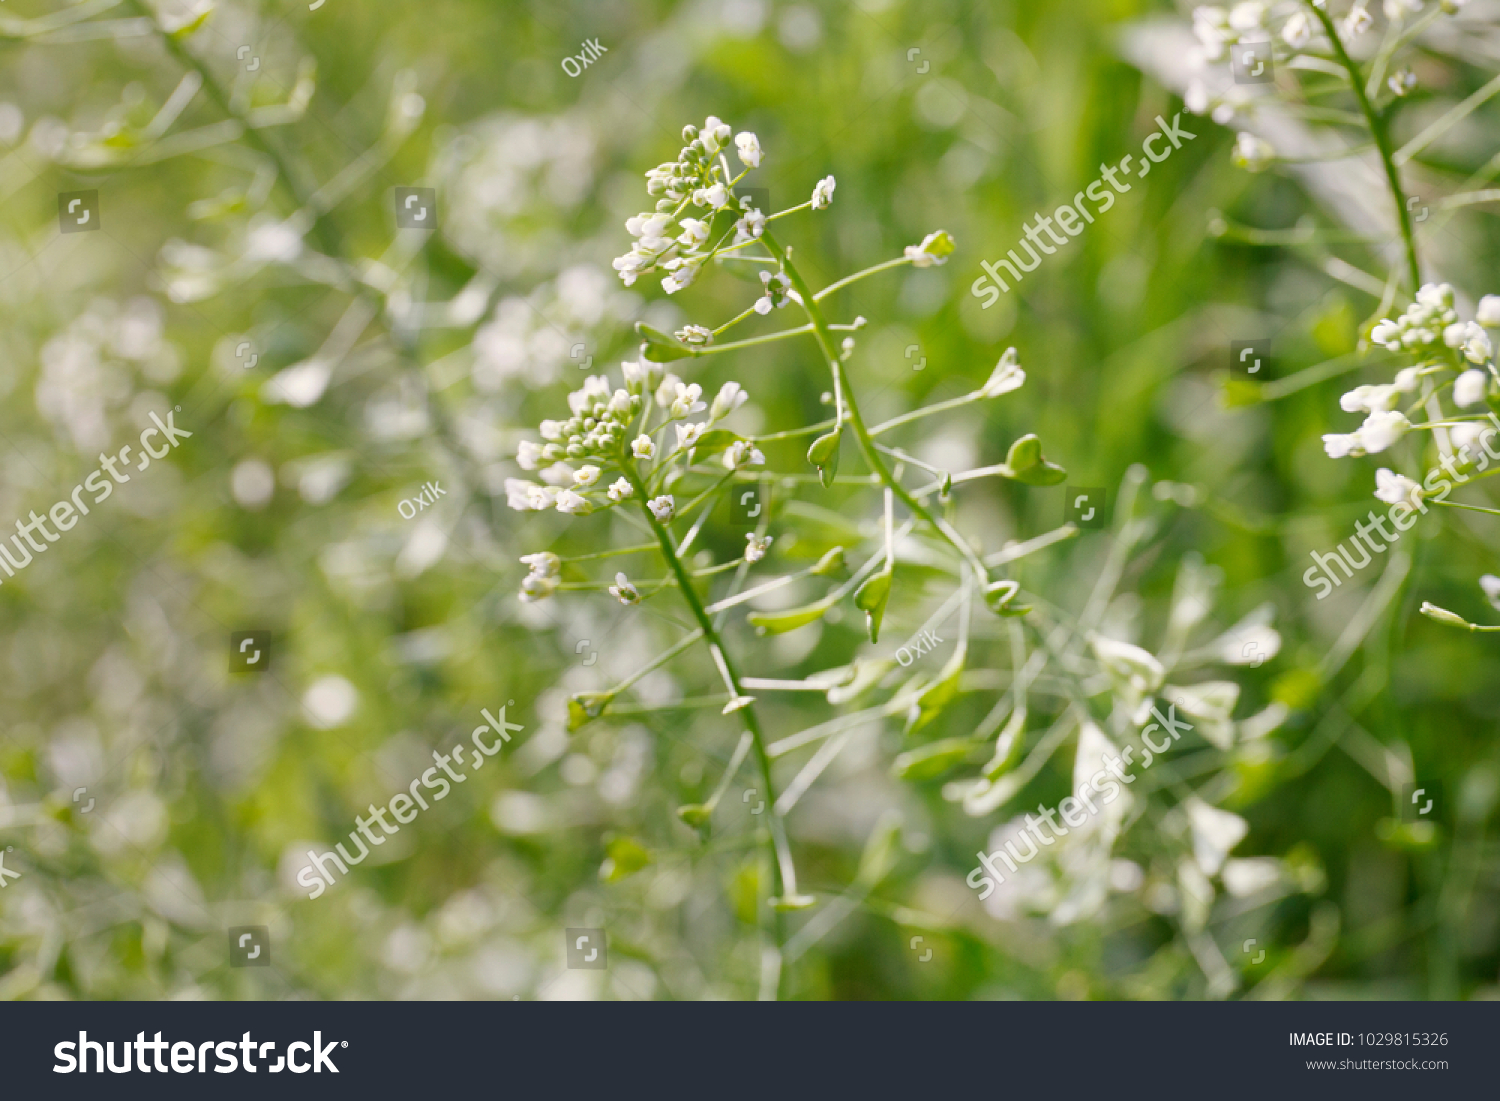 Green White Flower Weed Grass Shepherds Stock Photo Edit Now